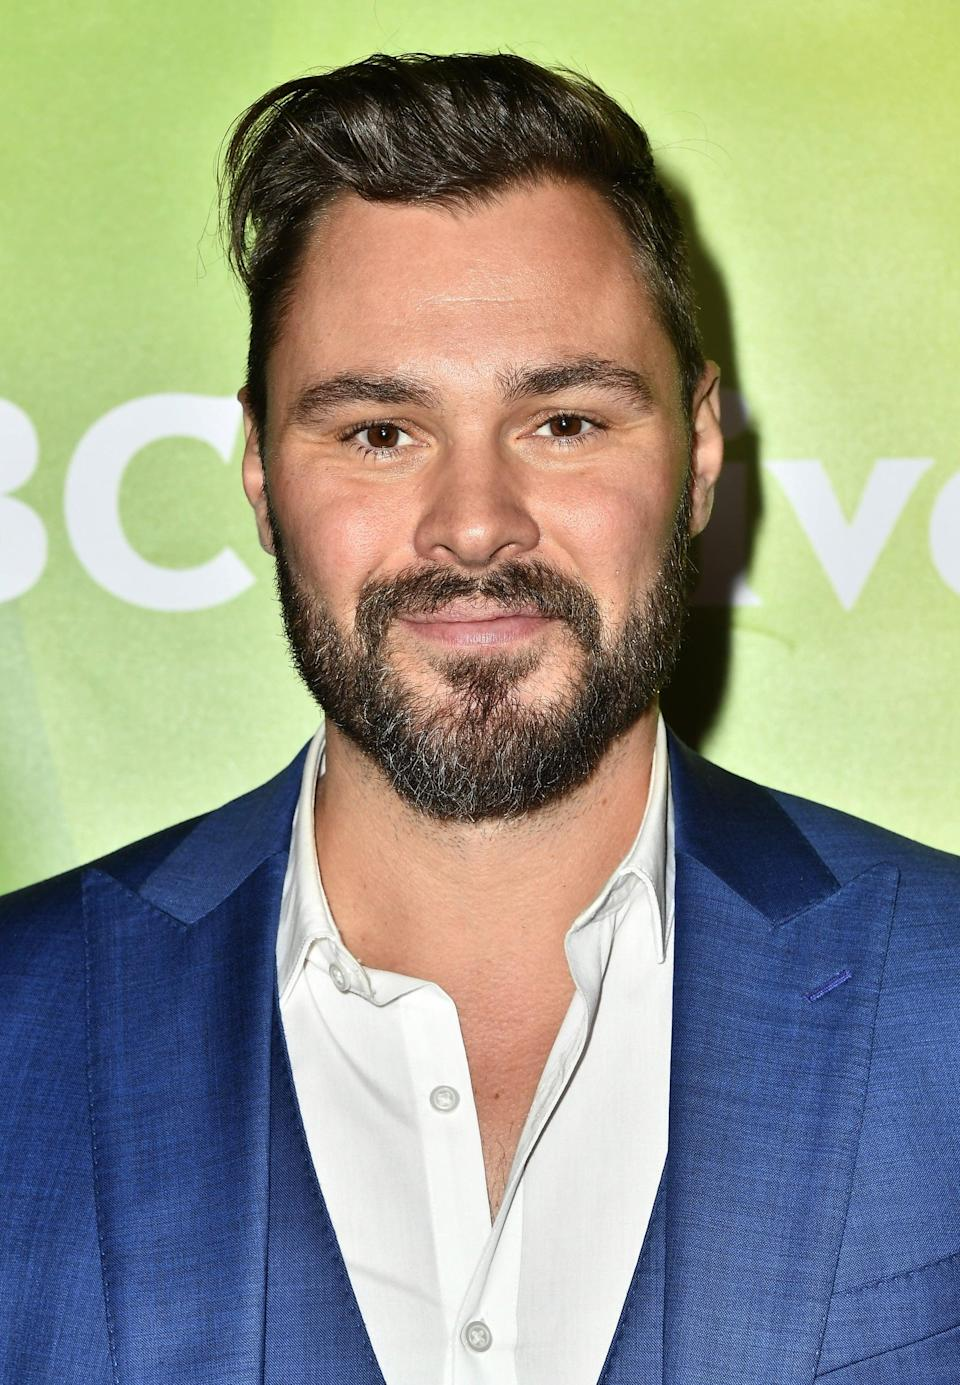 "<p>Patrick John Flueger has come a long way from cohosting a public access show as Jeremiah Hart! The talented actor joined the Dick Wolf family in 2014 with a lead role in <strong>Chicago P.D.</strong> He has since appeared in sister shows <strong>Chicago Fire</strong> and <strong>Chicago Med</strong>. It was <a href=""http://www.themarysue.com/captain-america-actors/"" class=""link rapid-noclick-resp"" rel=""nofollow noopener"" target=""_blank"" data-ylk=""slk:rumored that Flueger even screen-tested"">rumored that Flueger even screen-tested</a> for Captain America in 2010 before <a href=""http://www.popsugar.com/Chris-Evans"" class=""link rapid-noclick-resp"" rel=""nofollow noopener"" target=""_blank"" data-ylk=""slk:Chis Evans"">Chis Evans</a> nabbed the role. </p>"